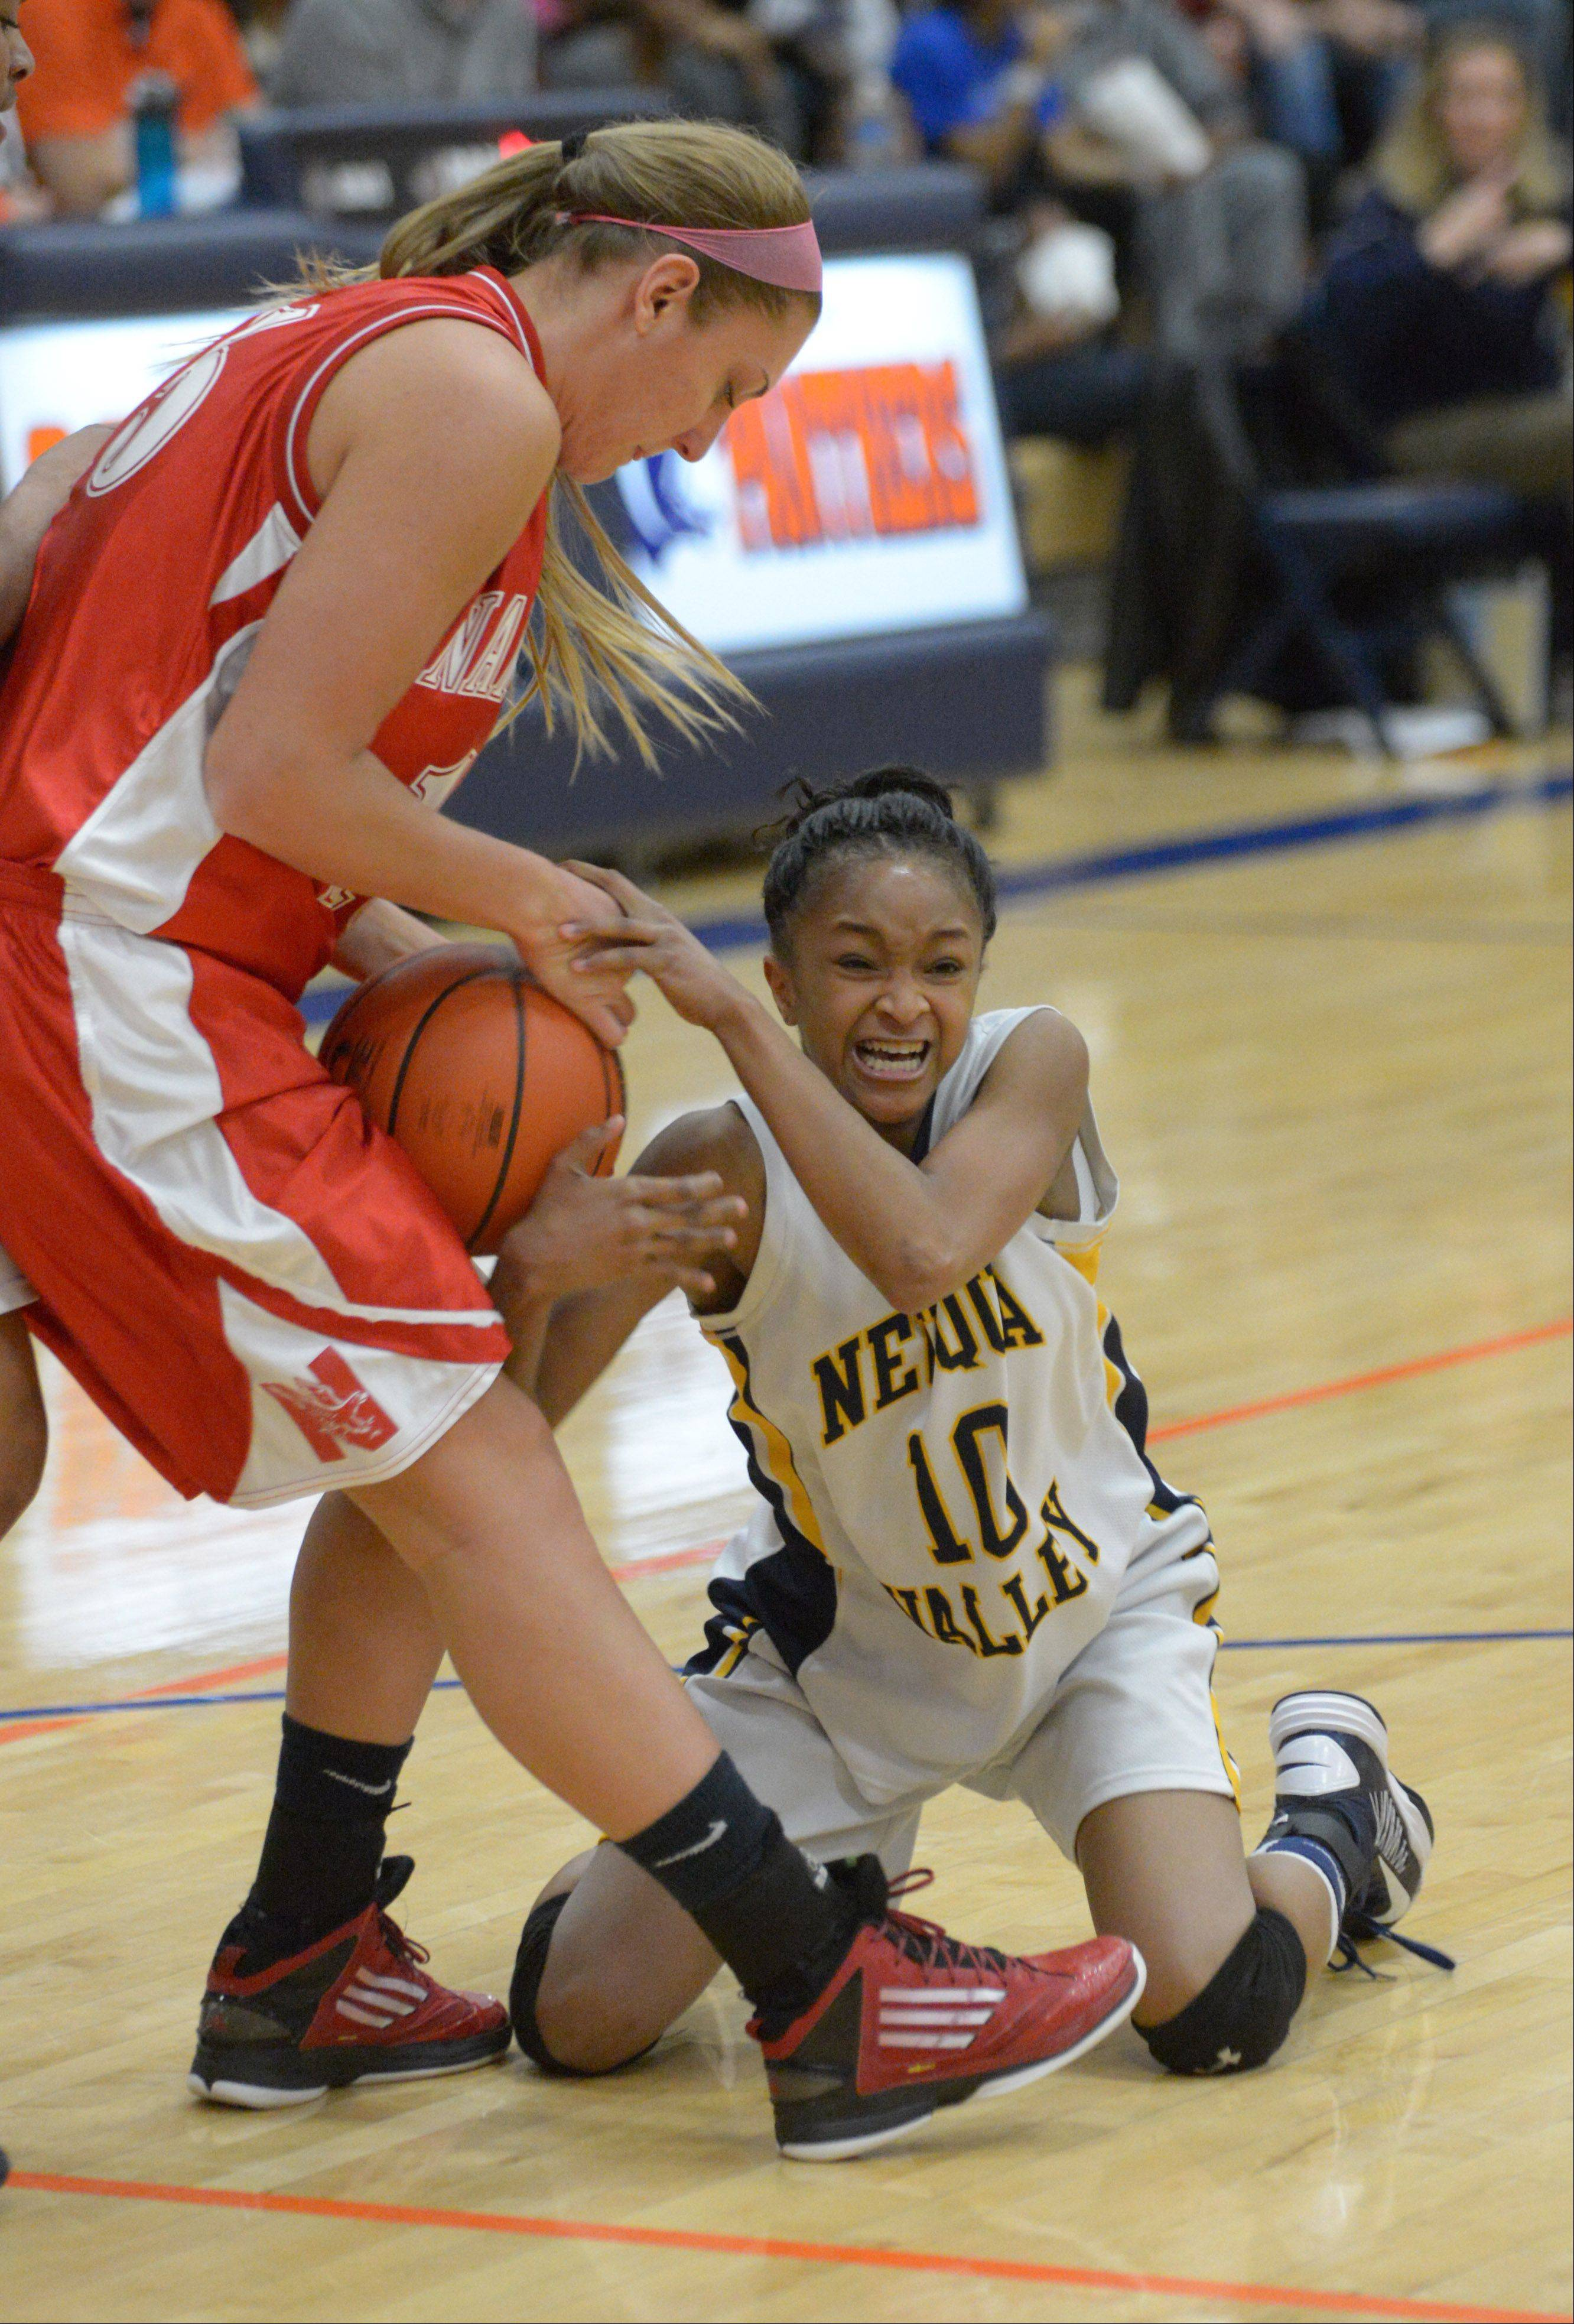 Laura Dierking,left, of Naperville Central and Myia Starks of Neuqua fight for a loose ball during the Neuqua Valley vs Naperville Central game in Oswego Tuesday. This was semifinal action.